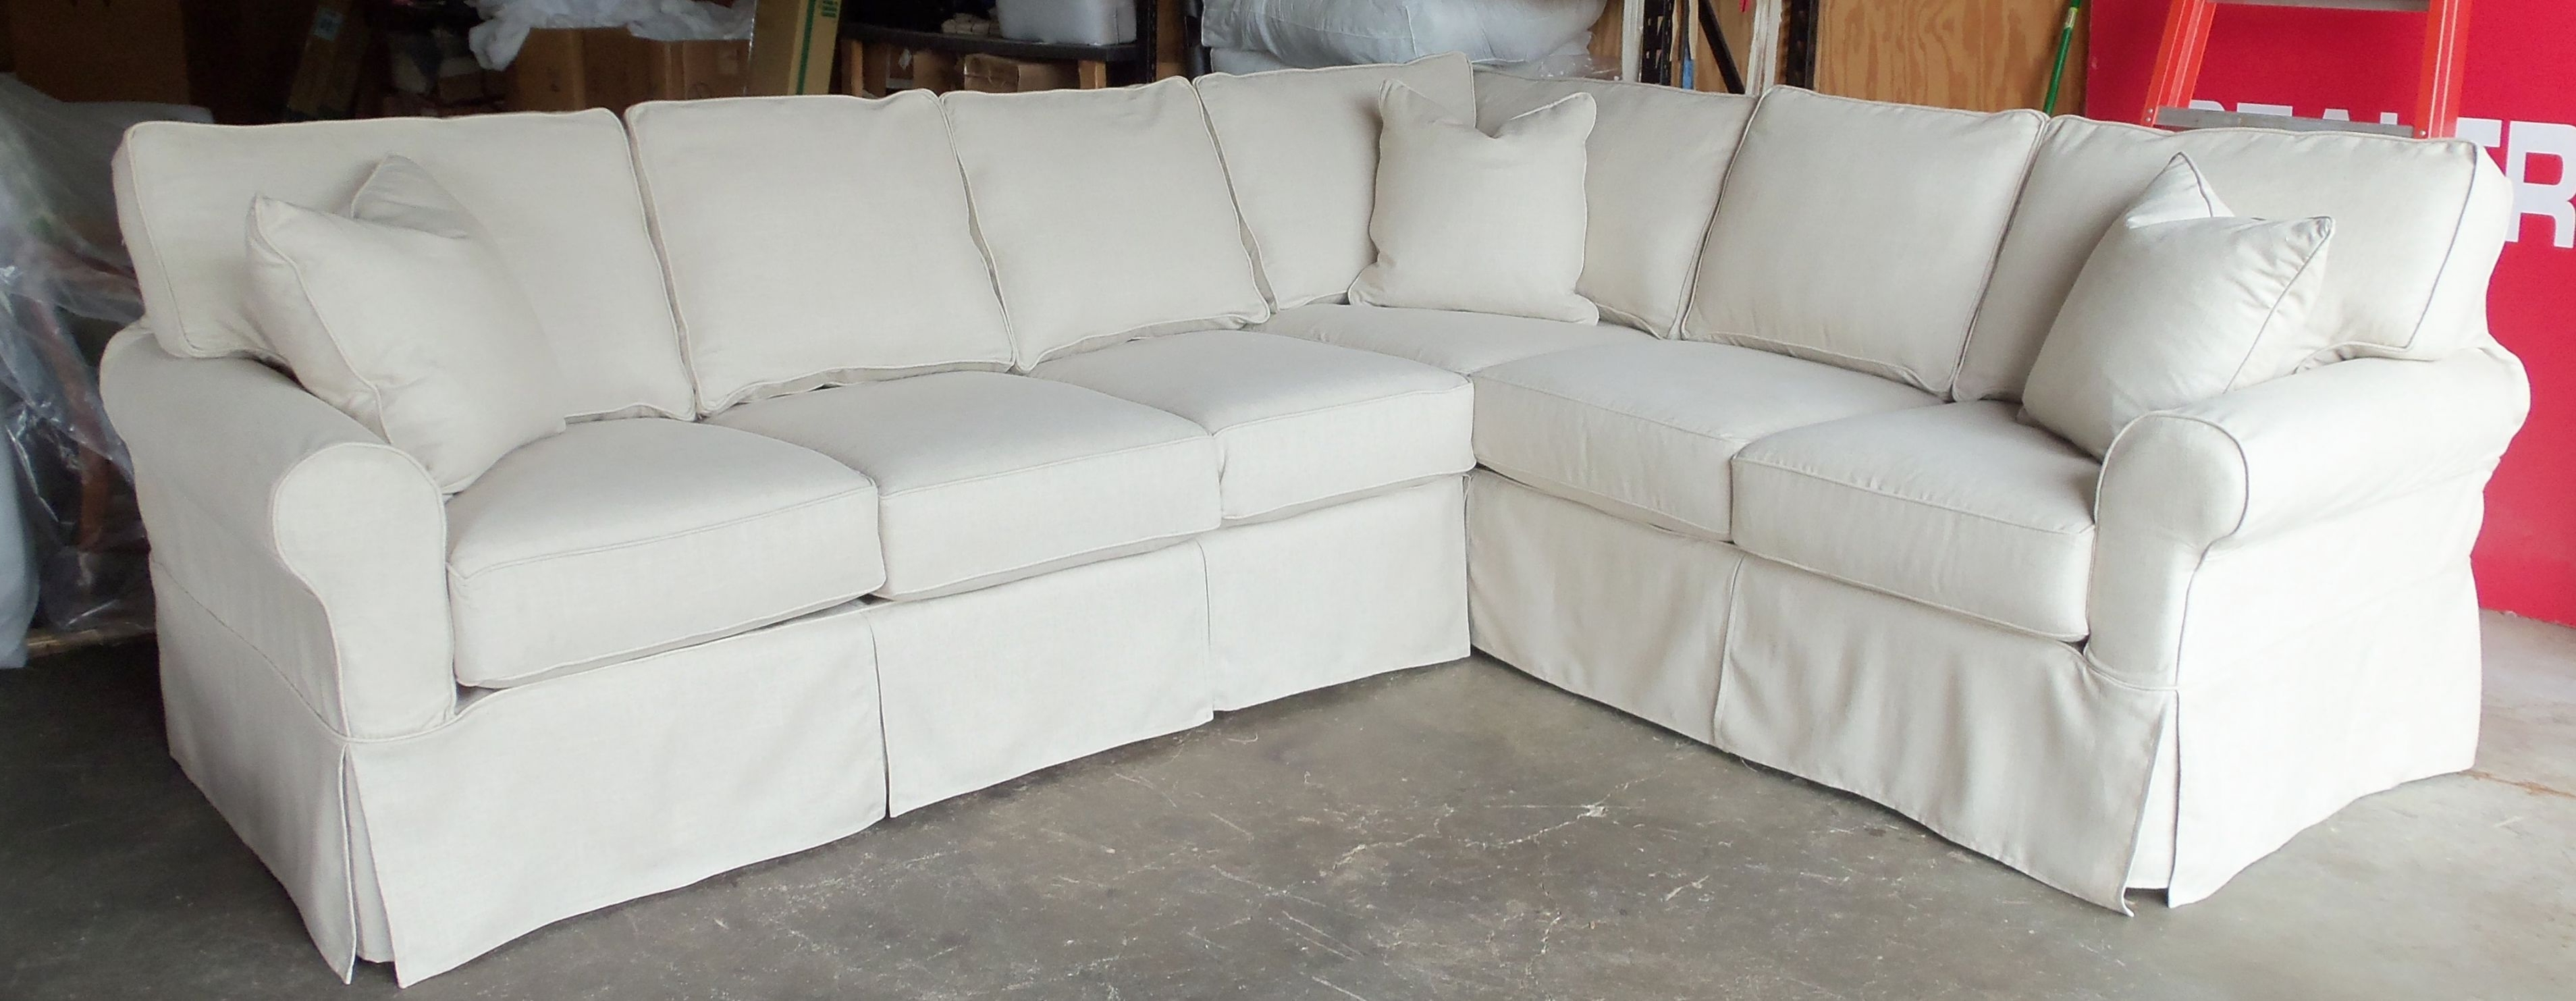 Well Known Sectional Sofas At Birmingham Al With Cheap Sectional Sofas In Birmingham Al (View 4 of 15)